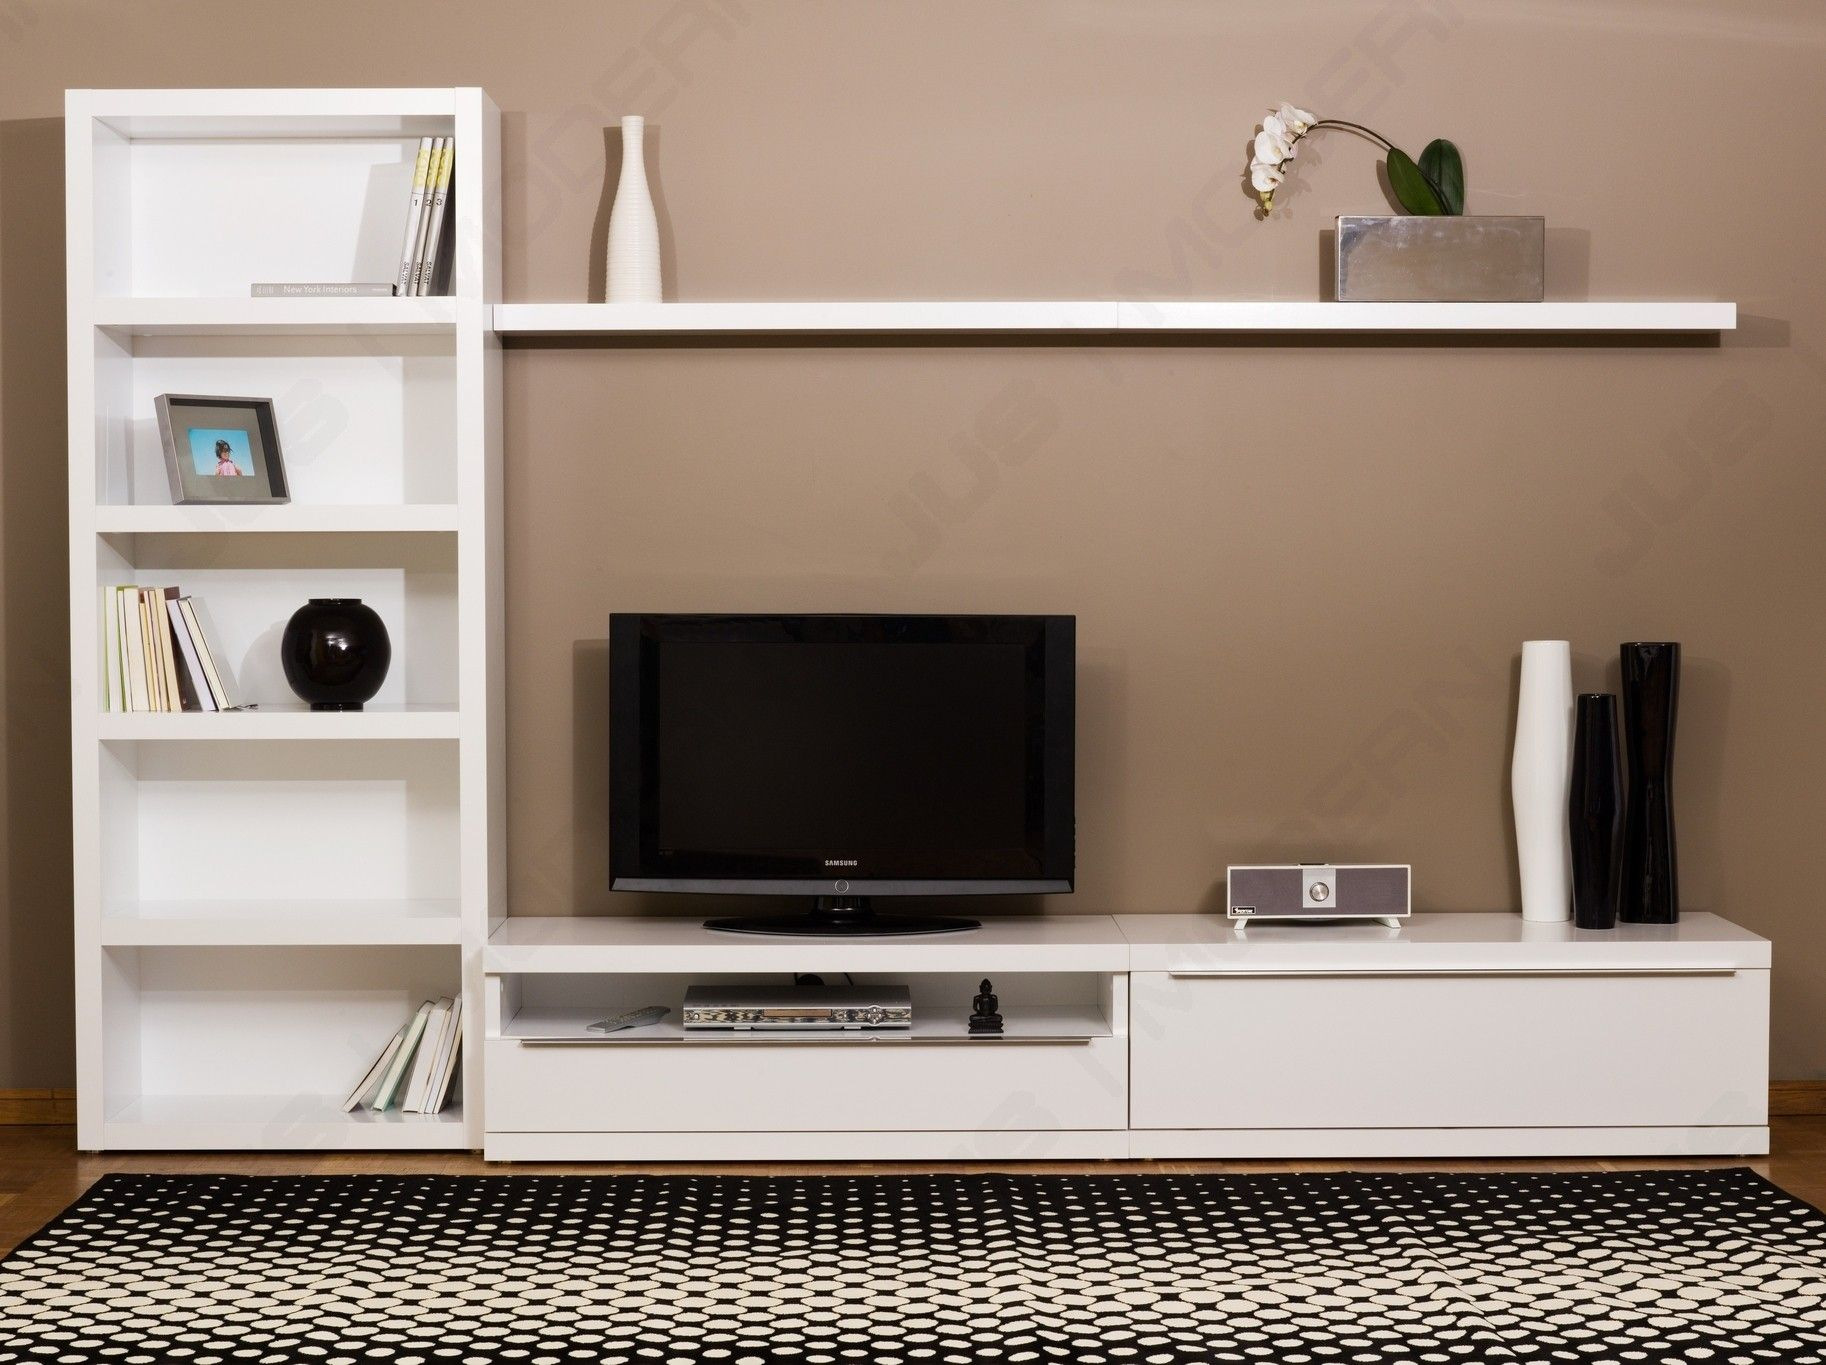 chic inspiration custom bookshelf. White Lacquered Bookcase Wall TV Cabinet Design  Valley Unit with Shelves from GoModern Home Inspiration Mounted Tv Stands Minimalist Stand An Trends Including